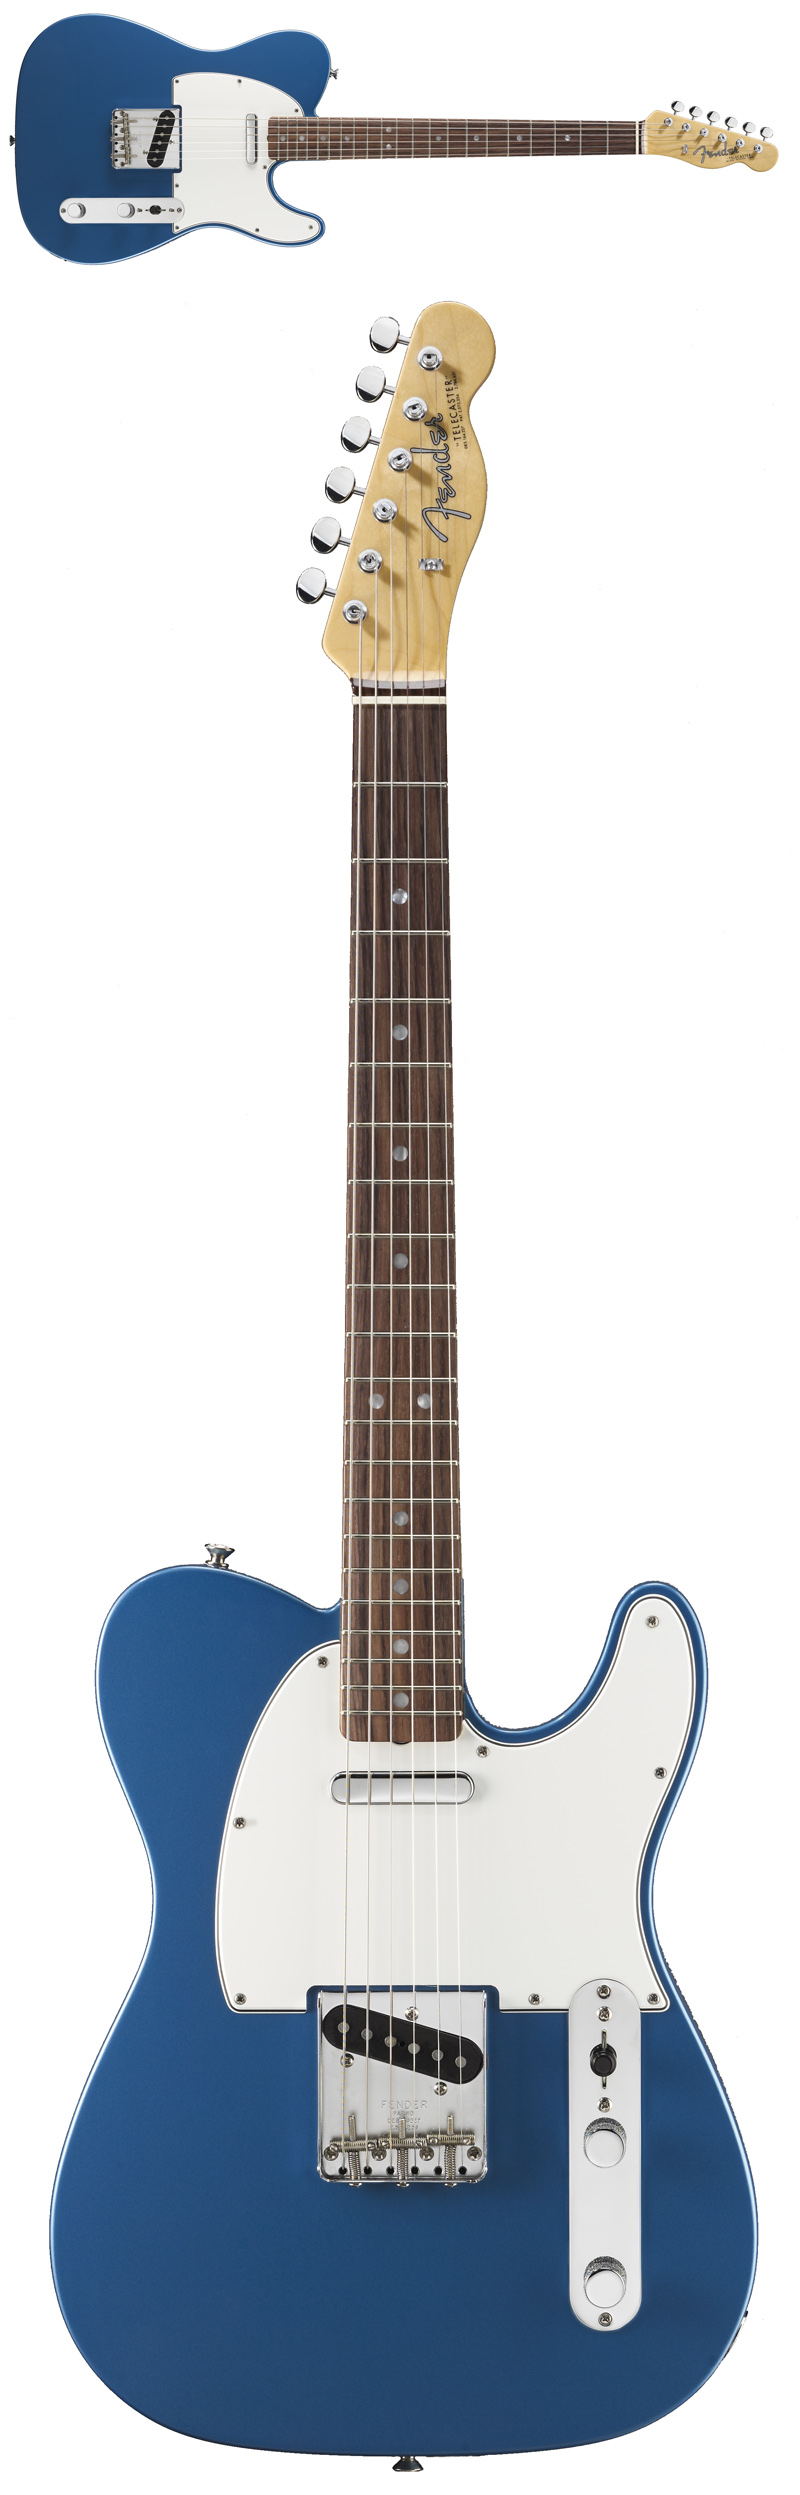 Fender American Vintage '64 Telecaster Electric Guitar. Get 10% off this guitar or anything else you need with Coupon Code PIN10 at MusicPower.com!